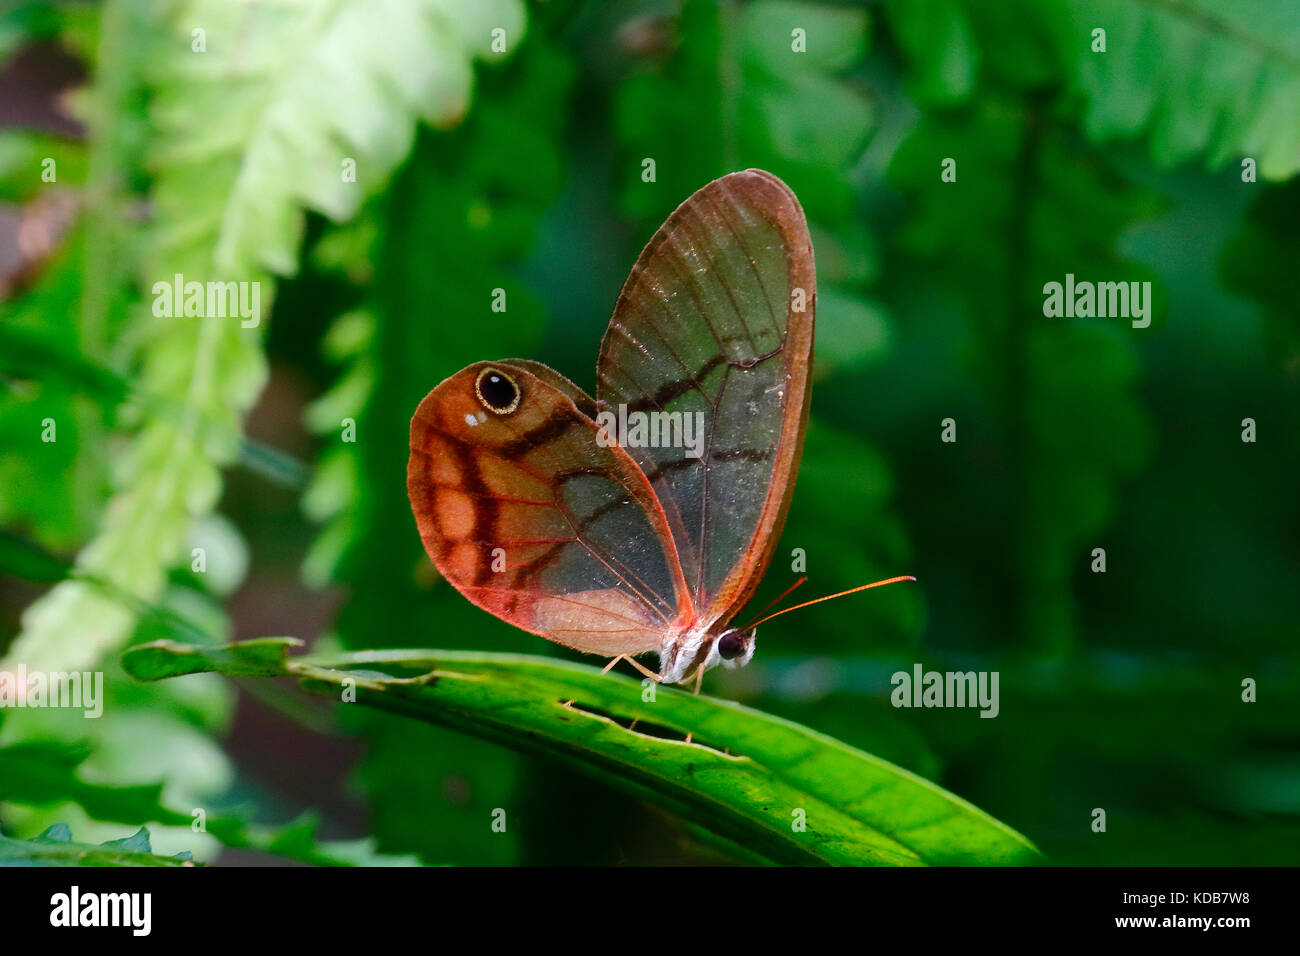 A rusted clearwing satyr butterfly, Cithaerias pireta, landing on a leaf. - Stock Image